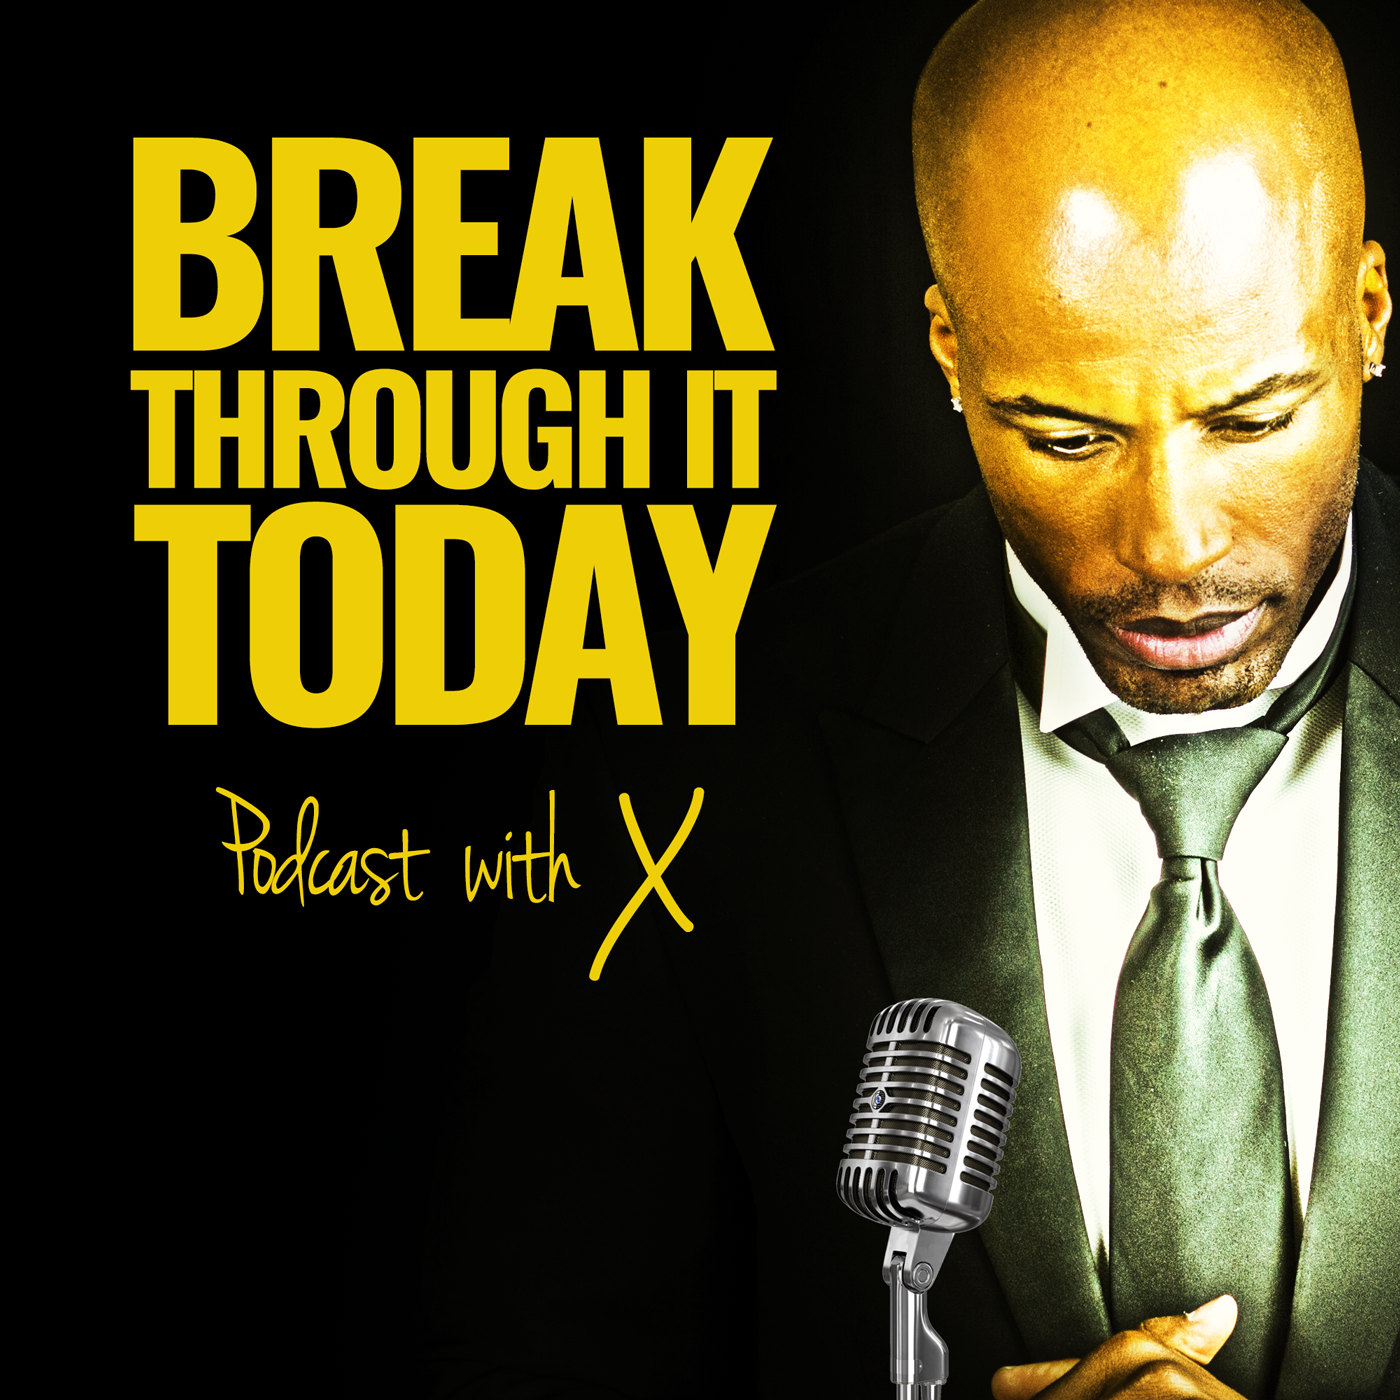 Break Through It Today Podcast With X show art